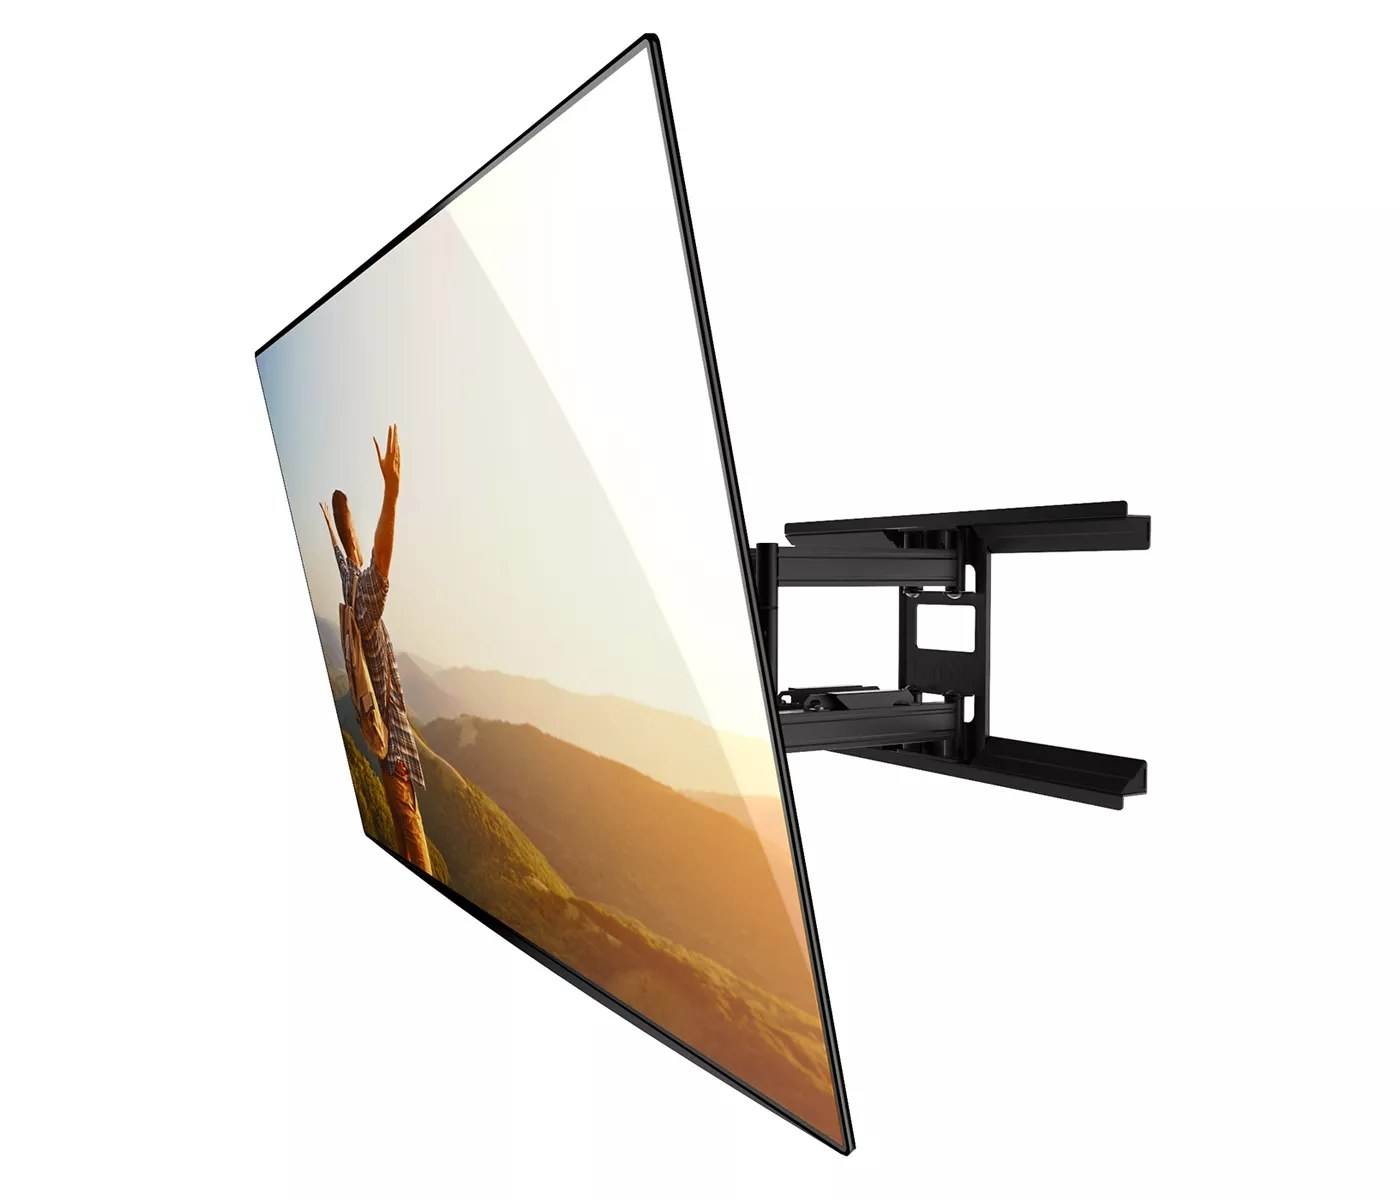 The TV mount